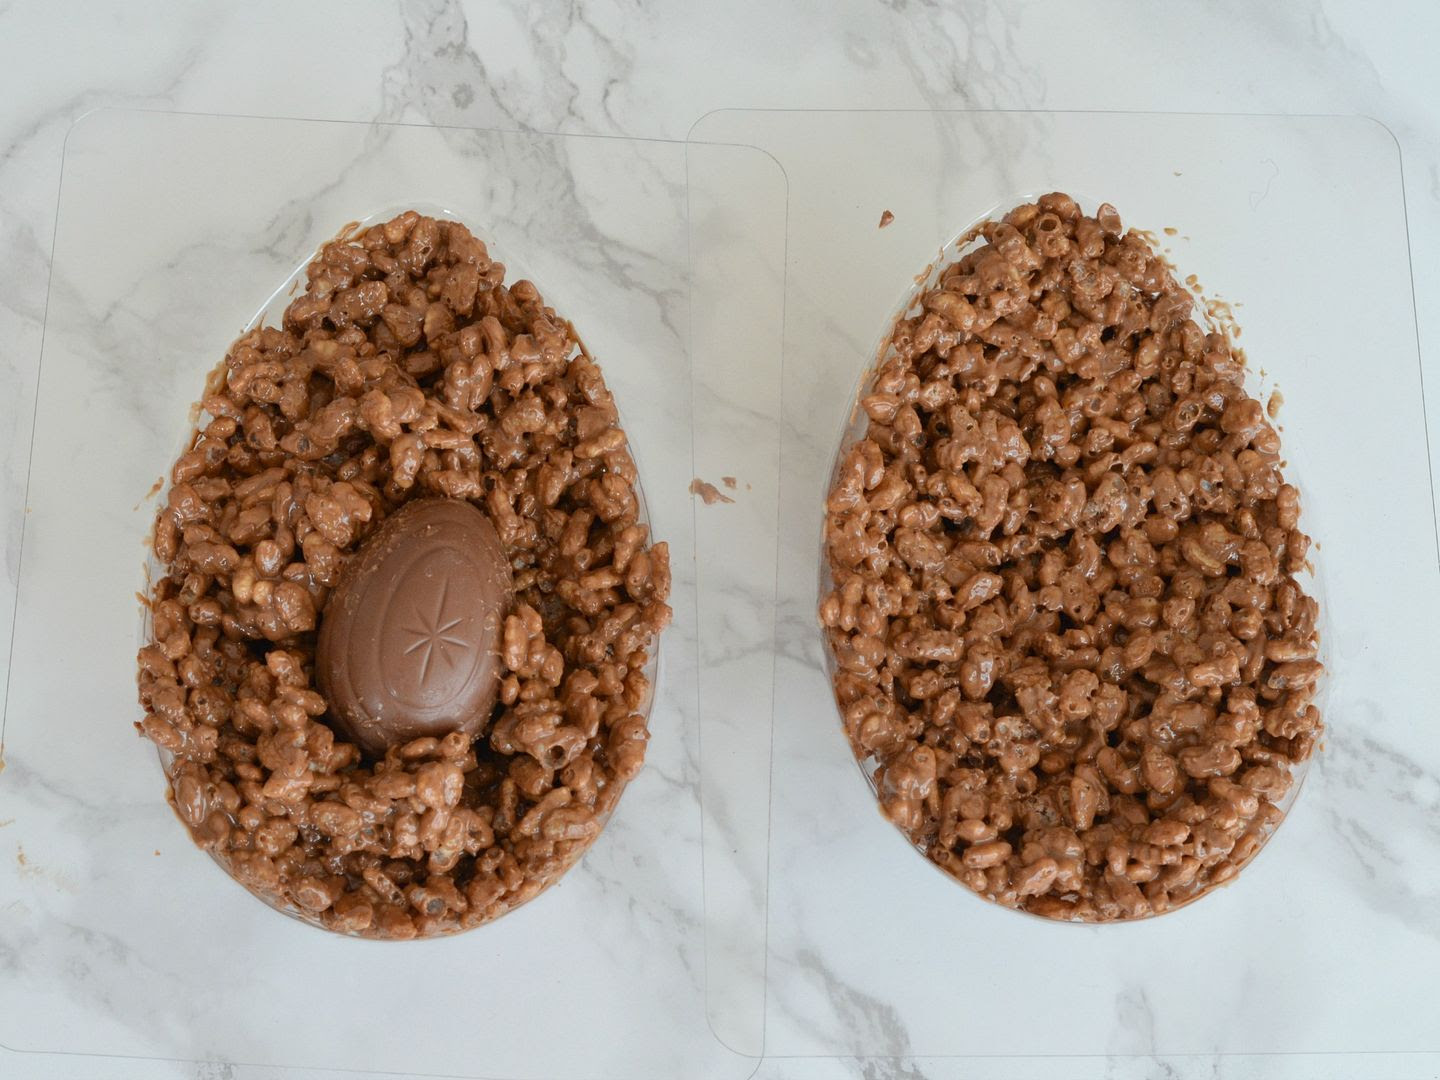 Chocolate Crispy Easter Egg with a Hidden Creme Egg